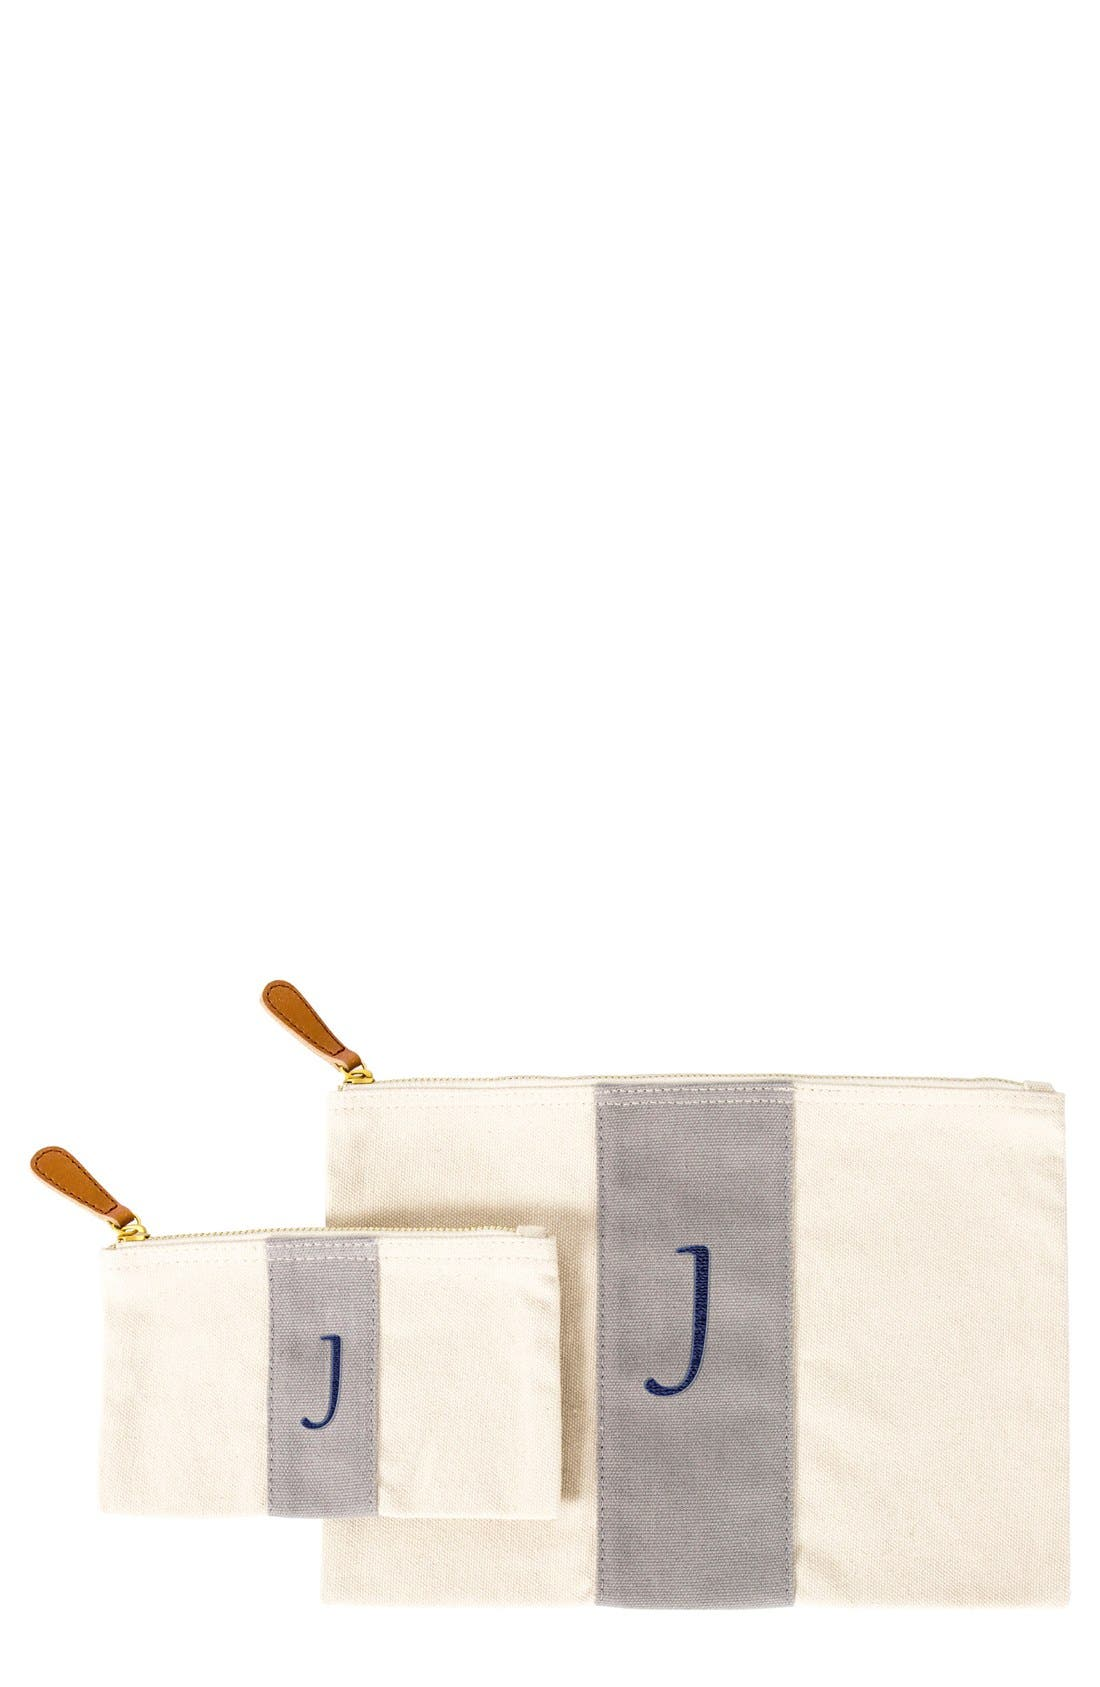 Cathy's Concepts Personalized Canvas Clutch